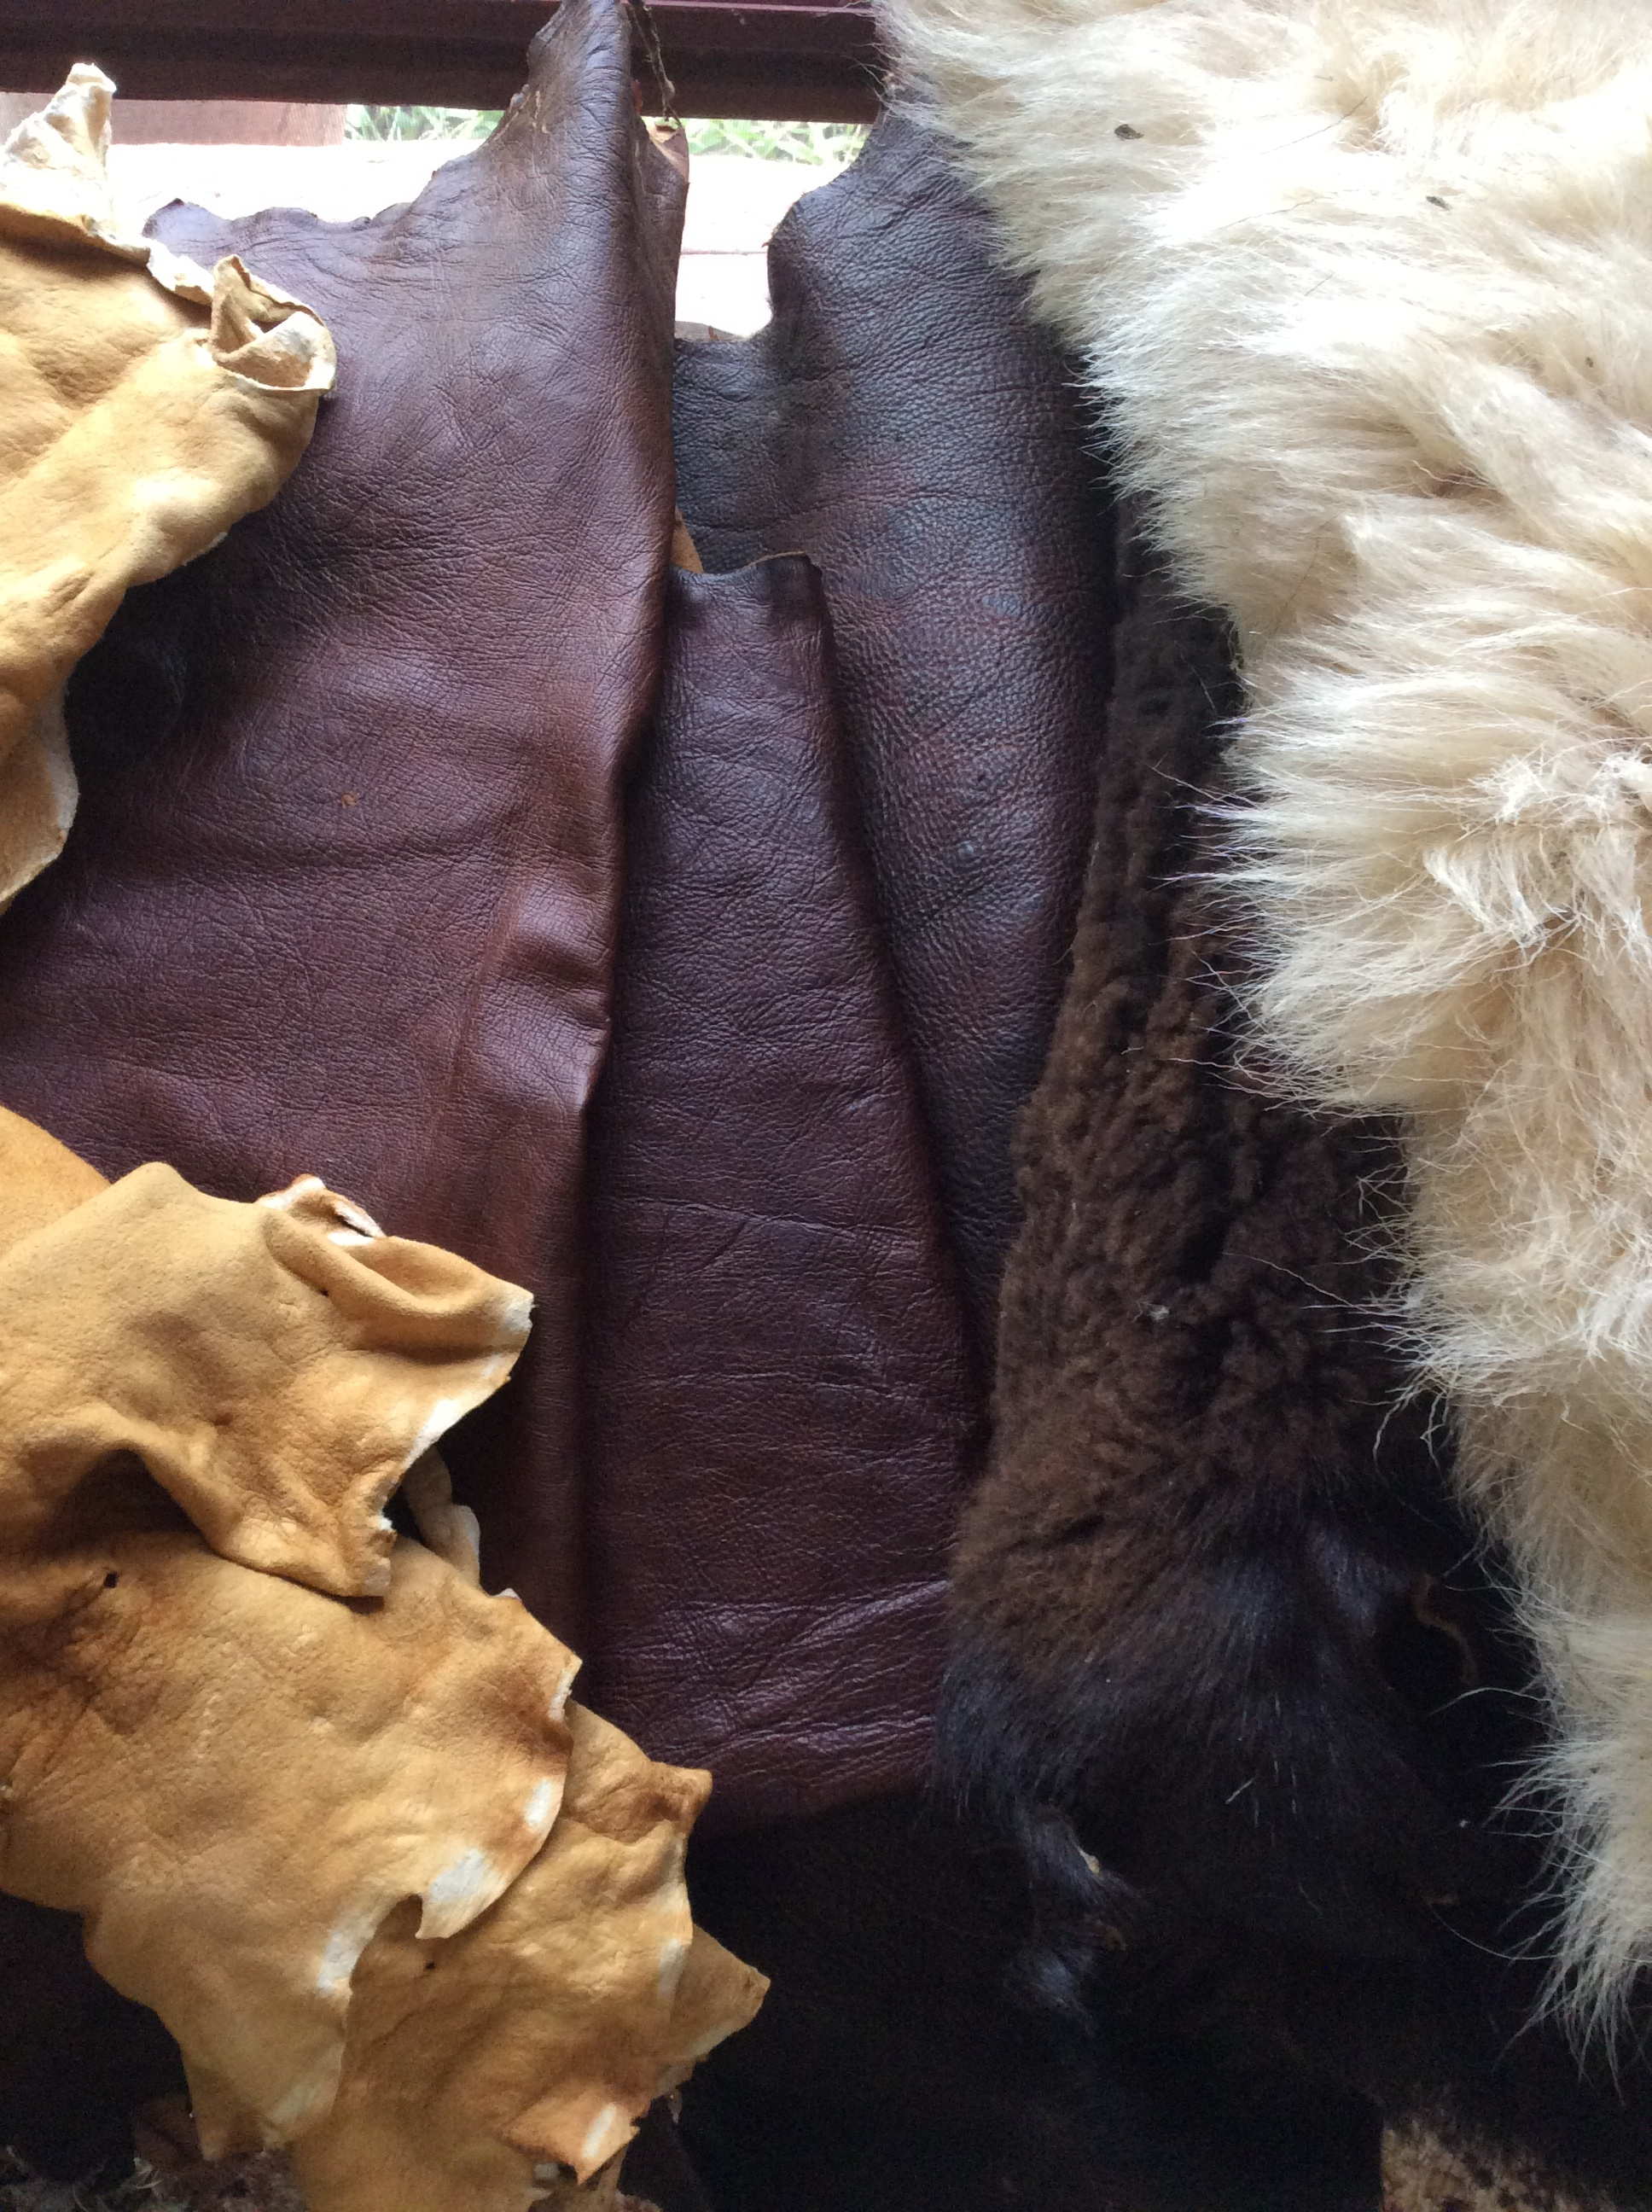 From left to right: smoked brain tanned buckskin, Coffee/Tea/Tanoak tanned leather, Hemlock/Sumac/Tanoak Tanned leather, brain tanned sheepskins.